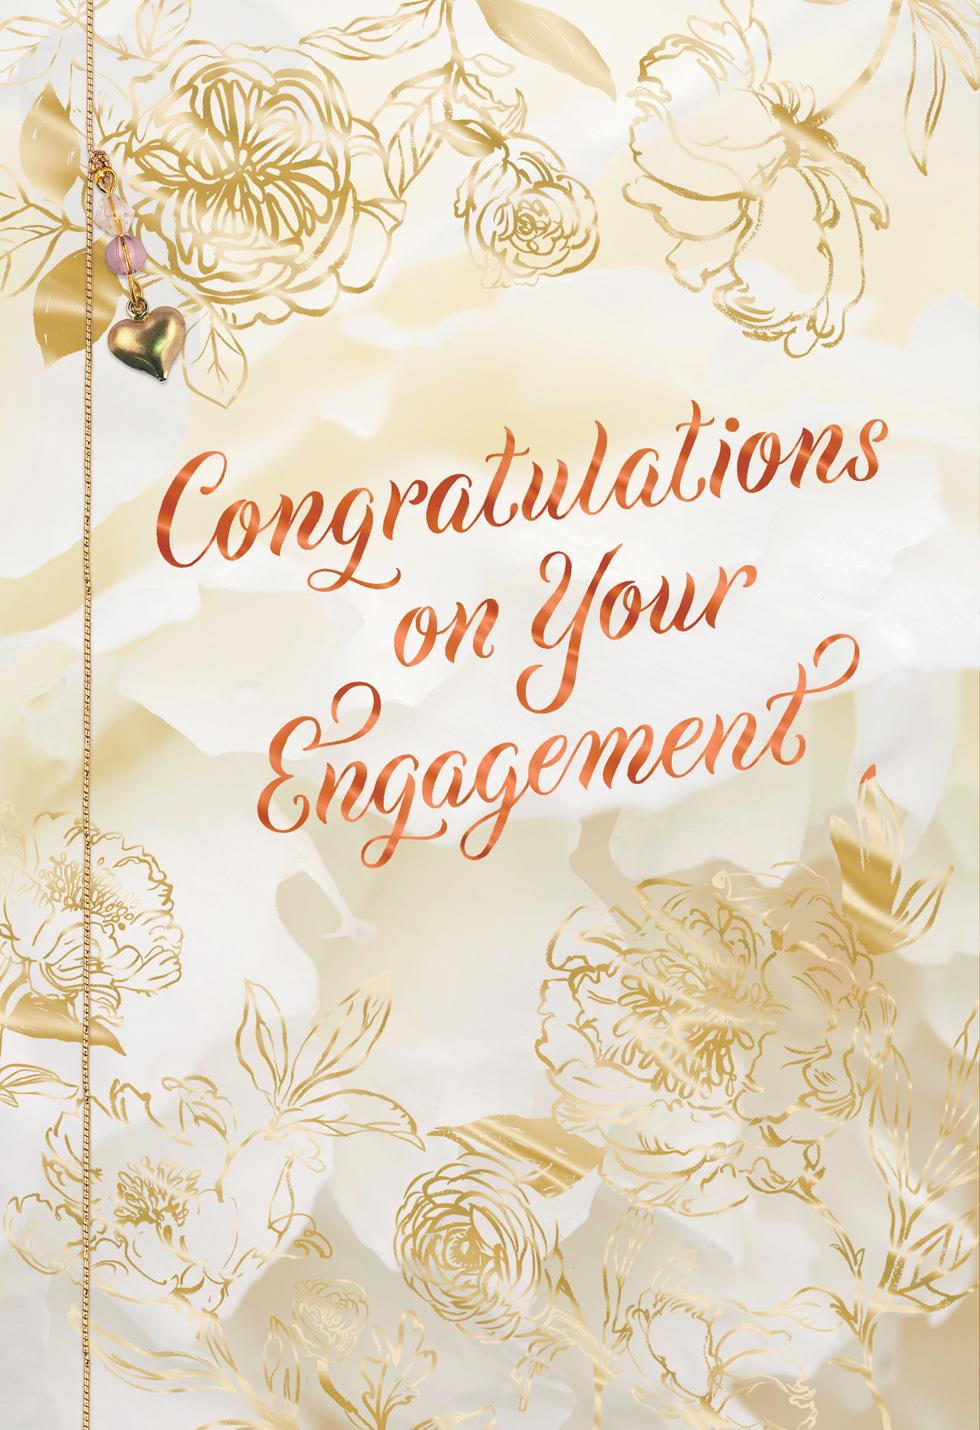 All The Happiness Engagement Wedding Card Greeting Cards